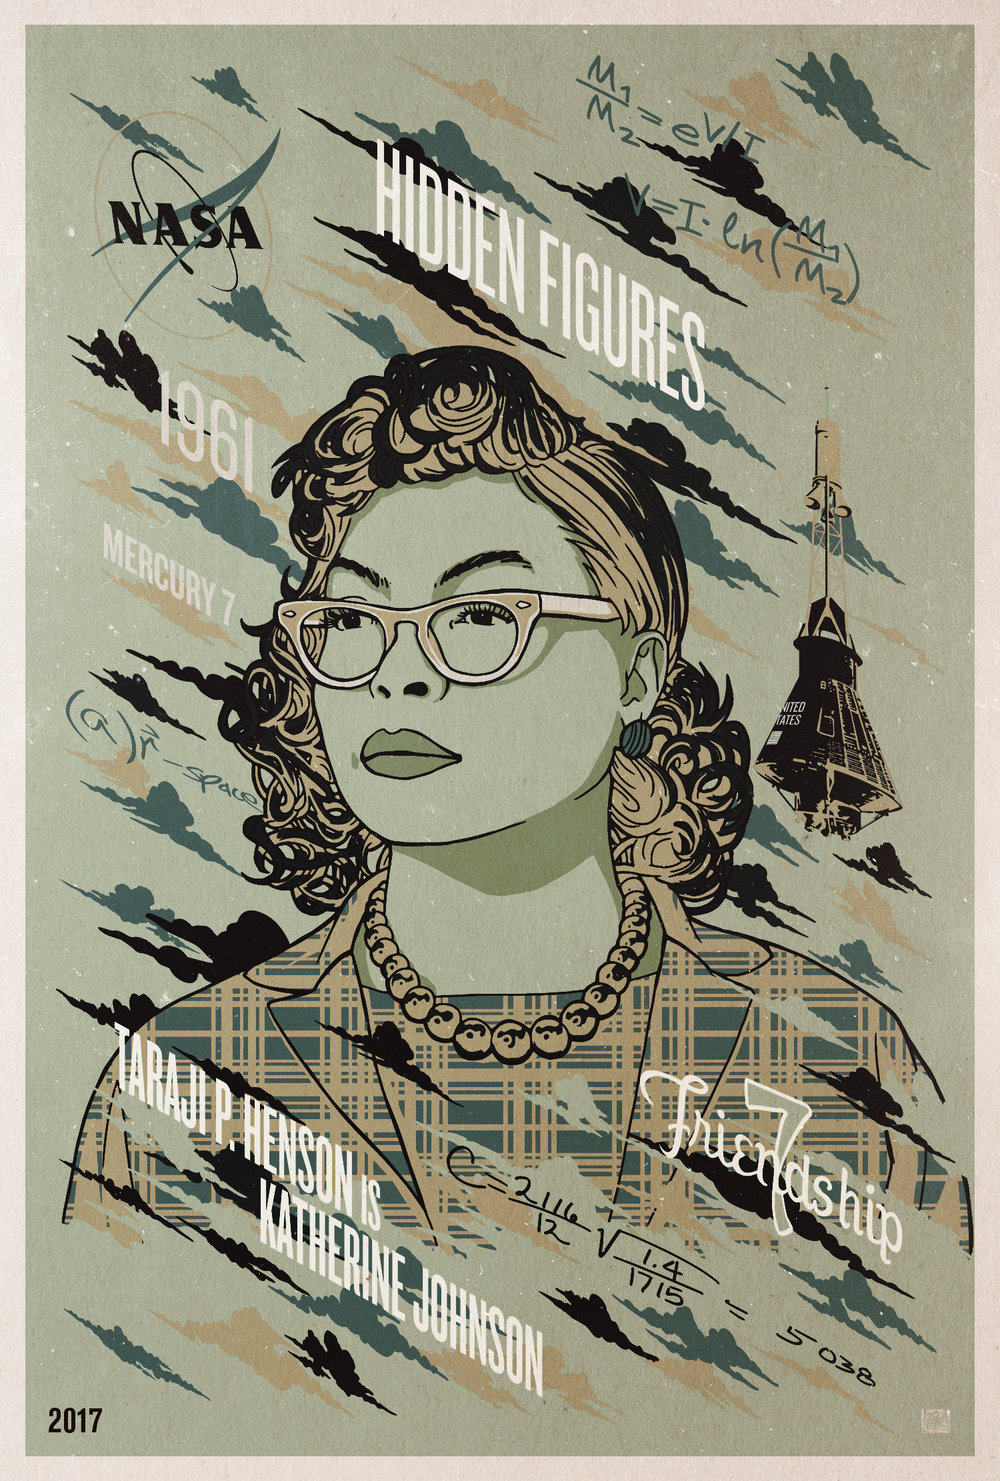 HIDDENFIGURES_R04_23.jpg